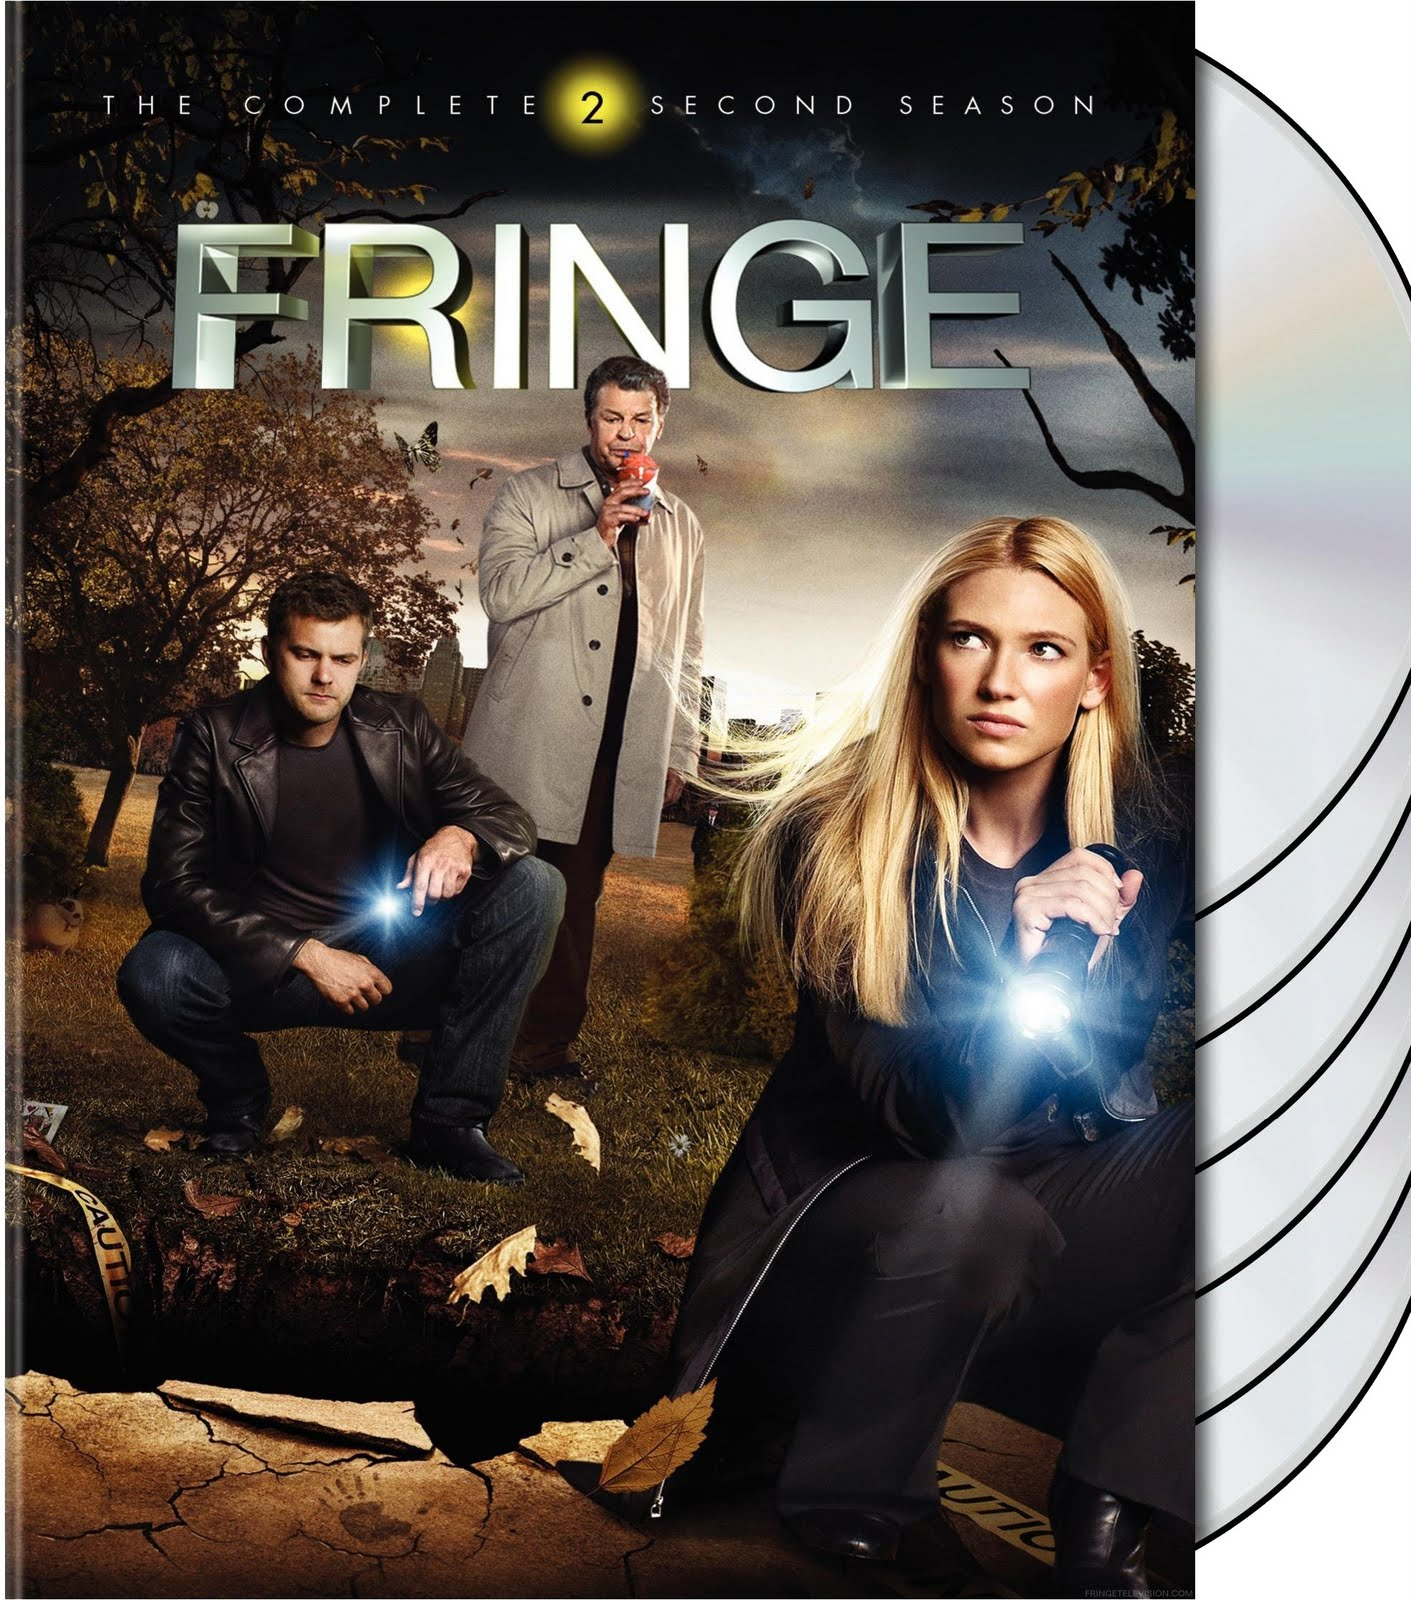 preorder fringe season 2 on blu ray or dvd fringe television fan rh fringetelevision com Fringe Clothing fringe series 4 episode guide